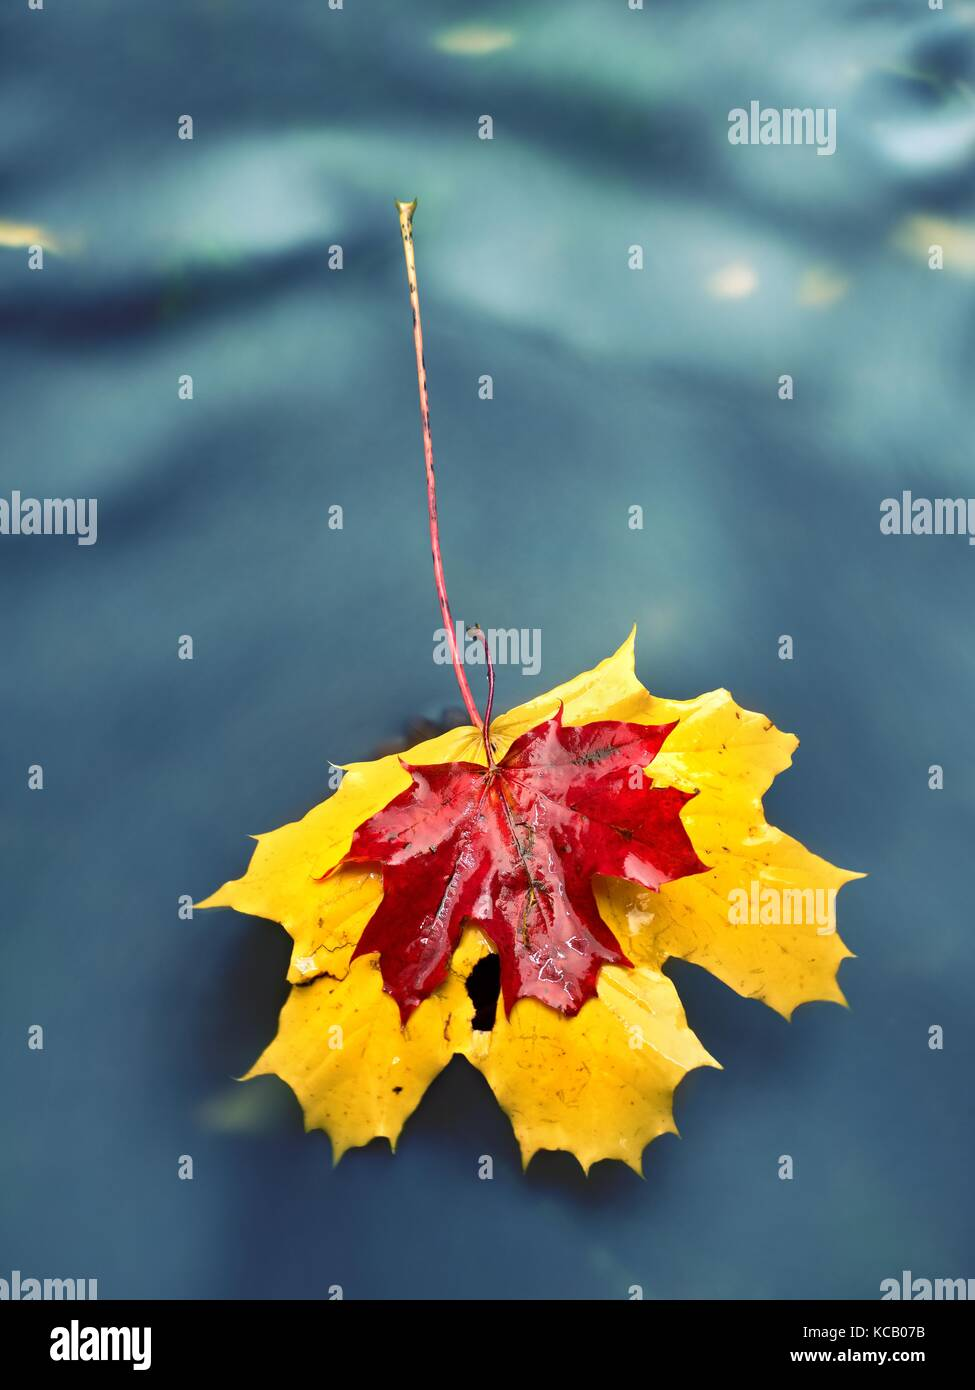 Yellow orange red  autumn maple leaves on water, dried leaf fallen into cold water - Stock Image